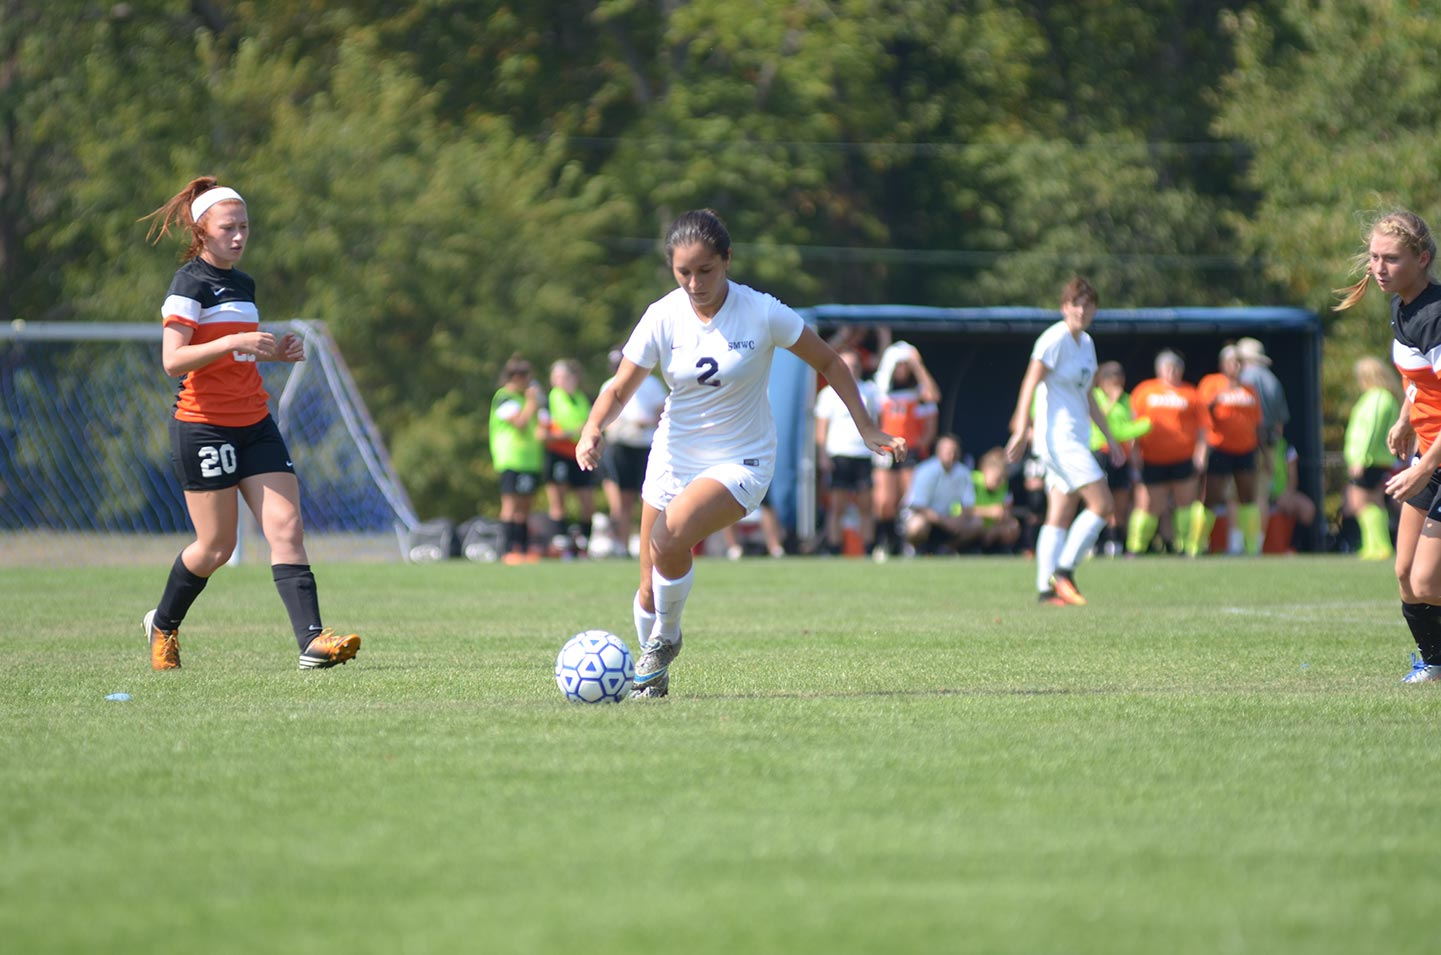 SMWC Women's Soccer player facing off with an opponent during a game